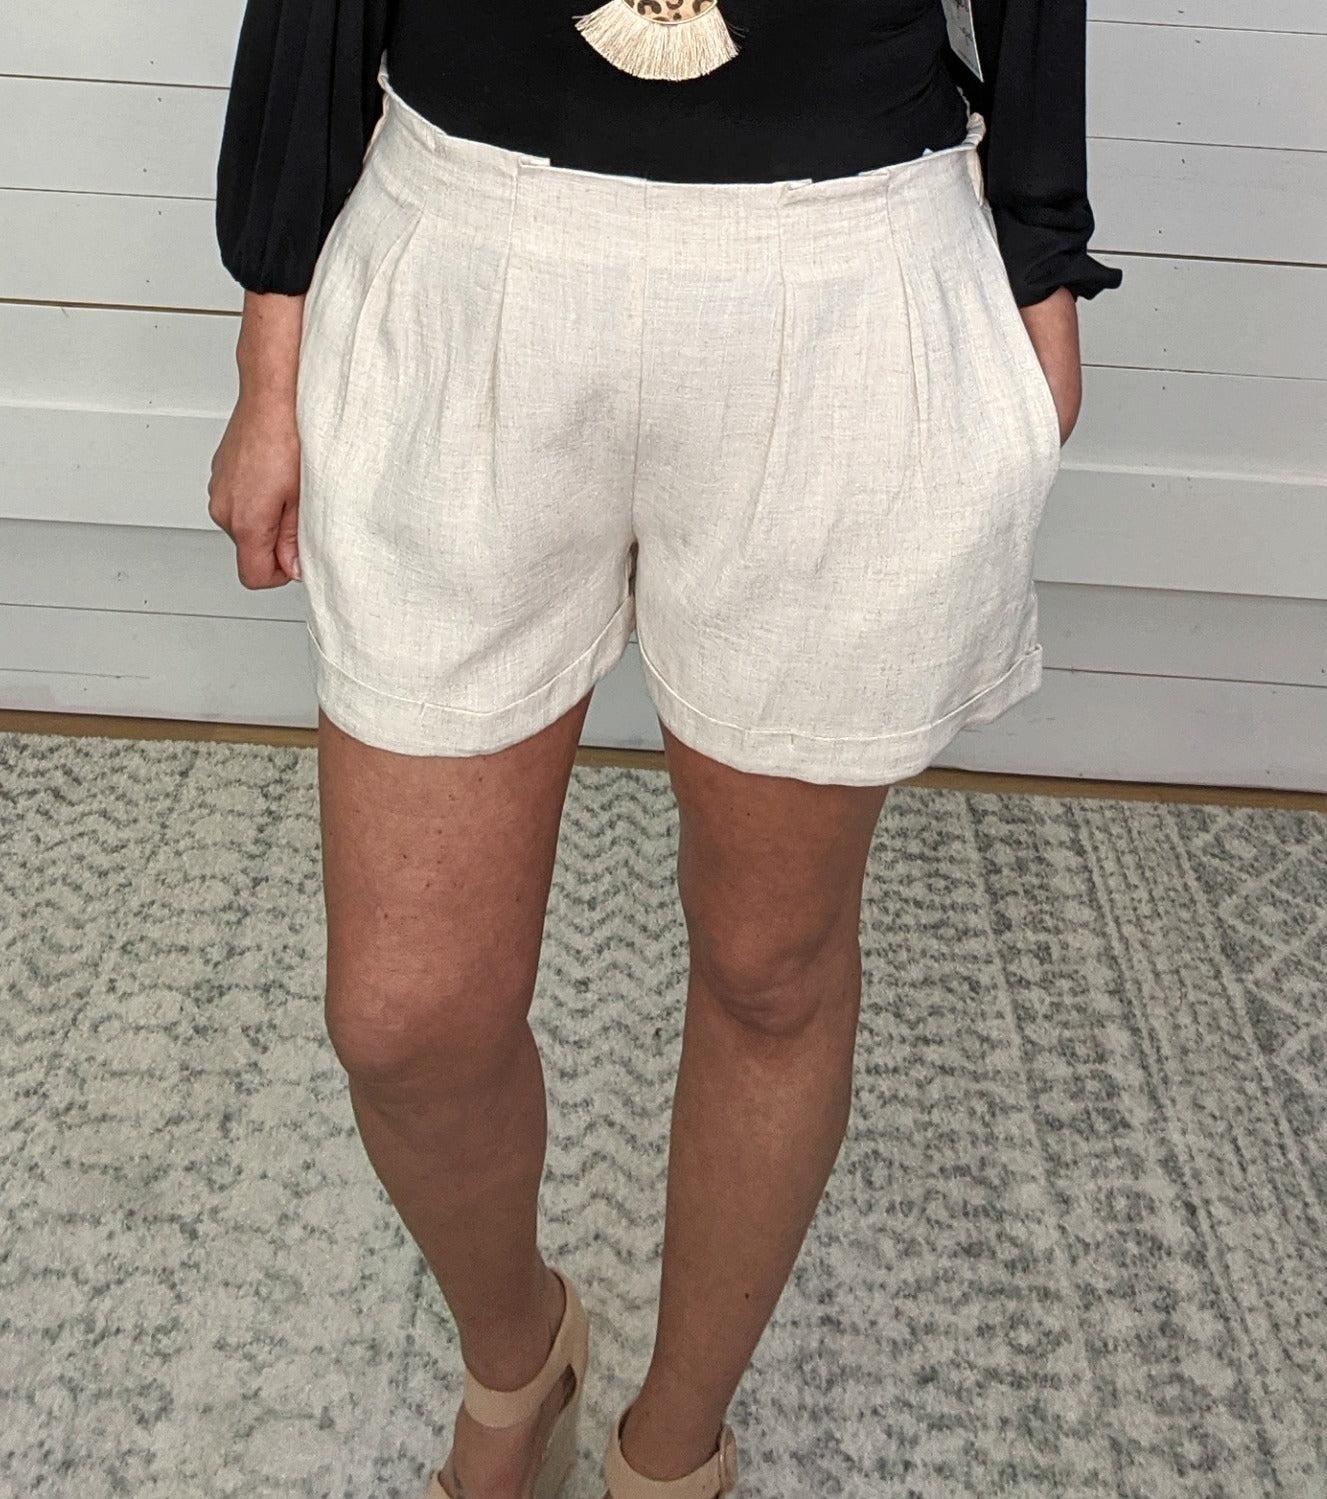 Brad Pintucked Shorts - Oatmeal *Final Sale*